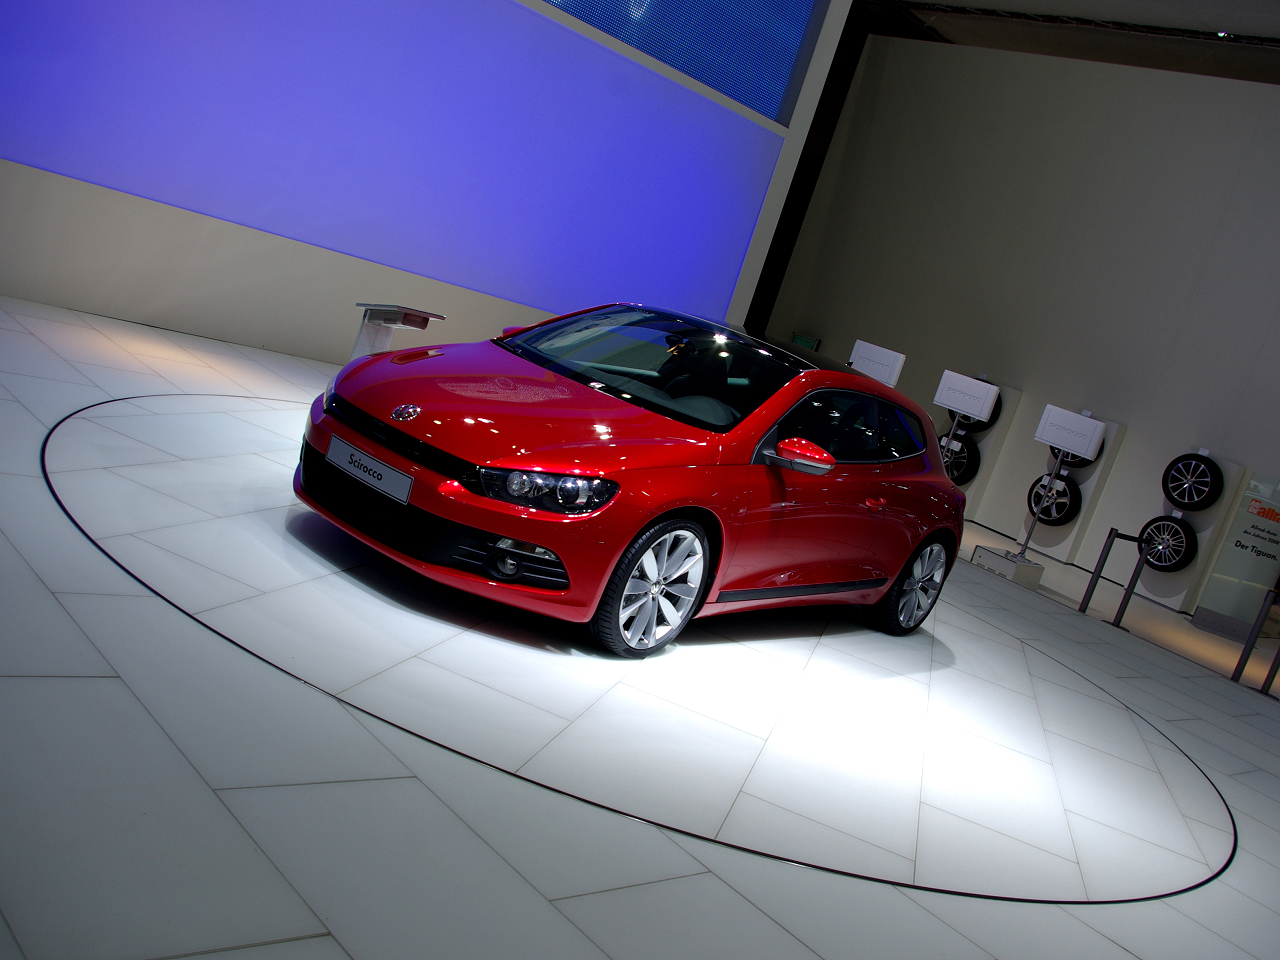 wallpaper 1024x960: All-new VW Scirocco on the Leipzig Motor Show